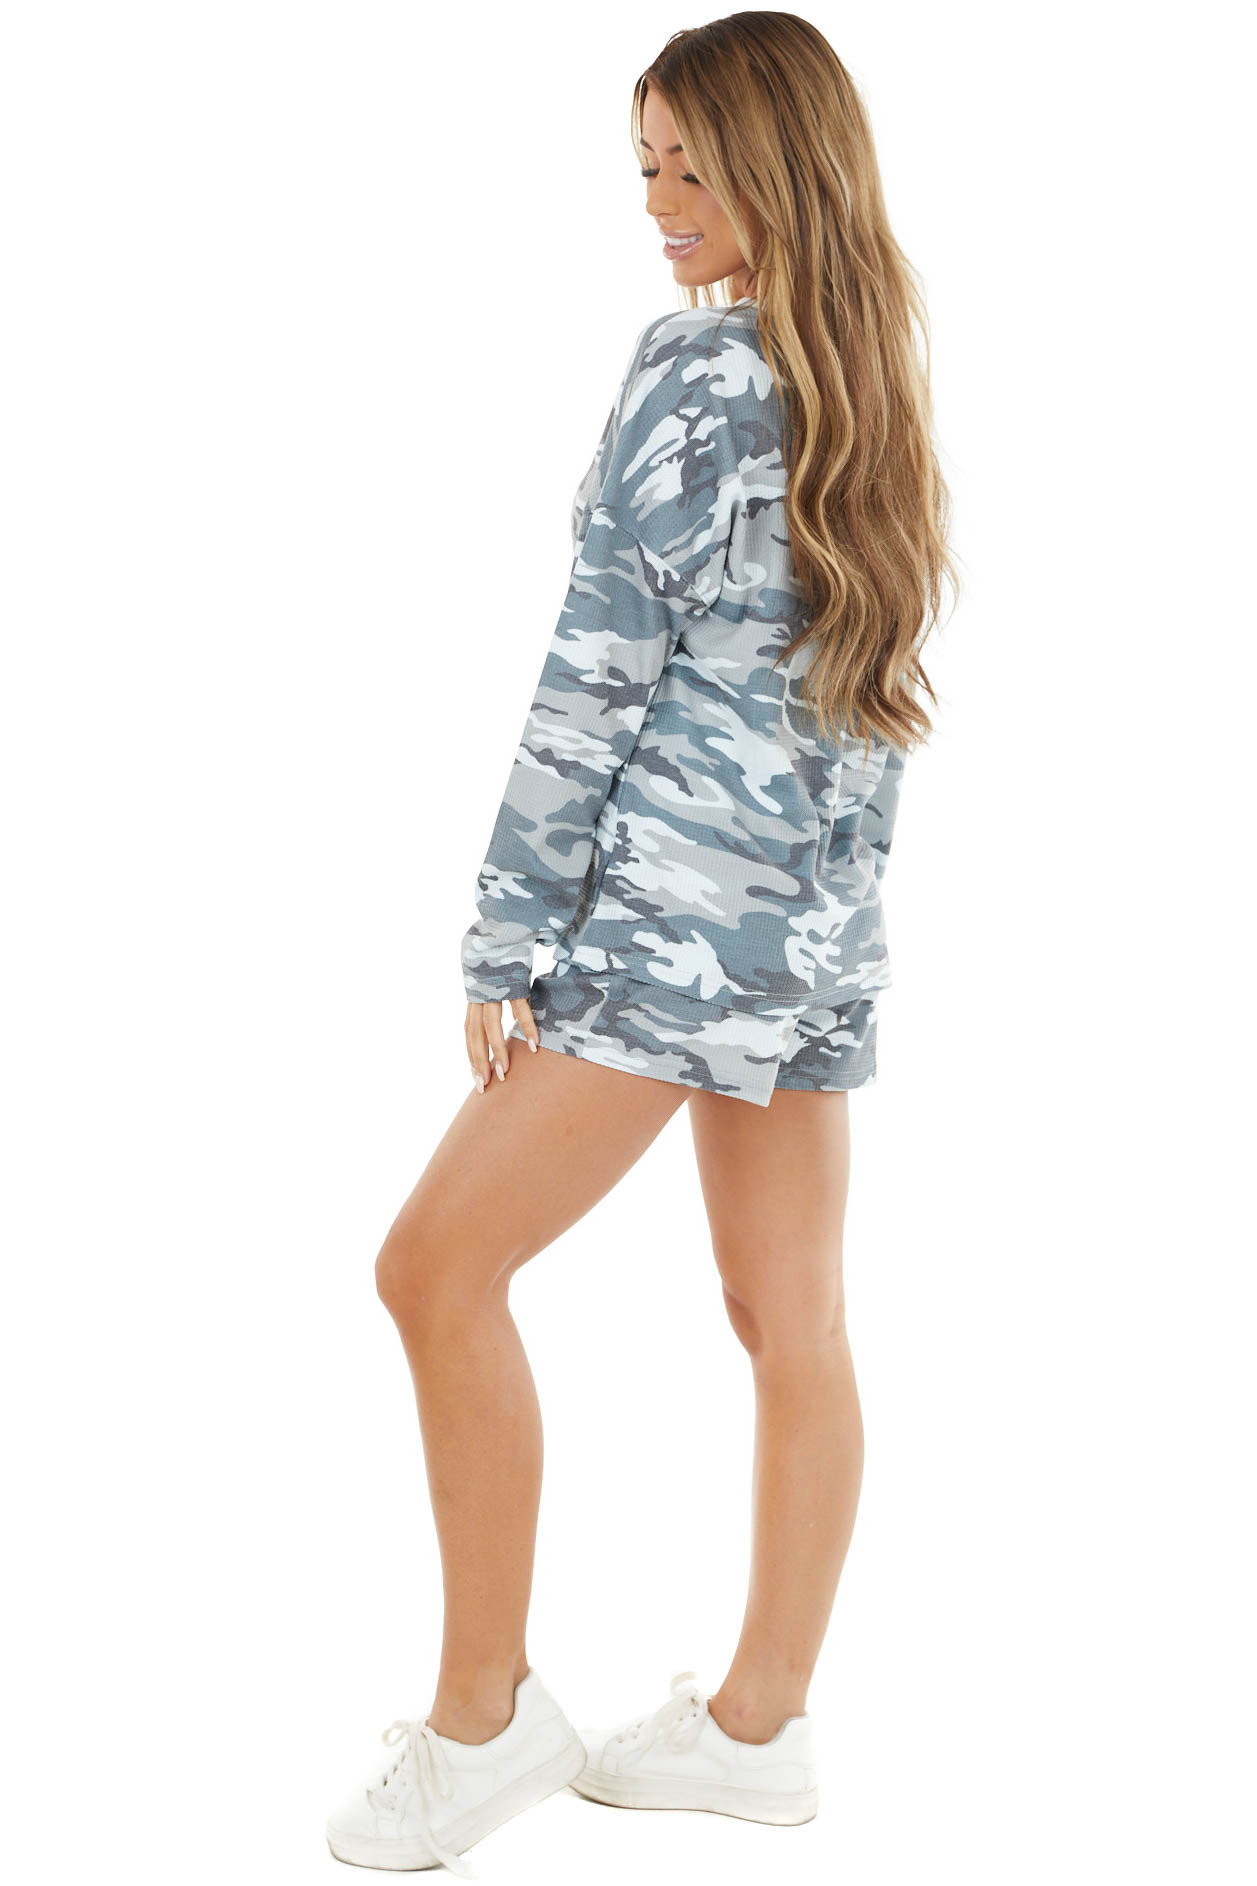 Hunter Green and Ivory Waffle Knit Camo Top and Shorts Set